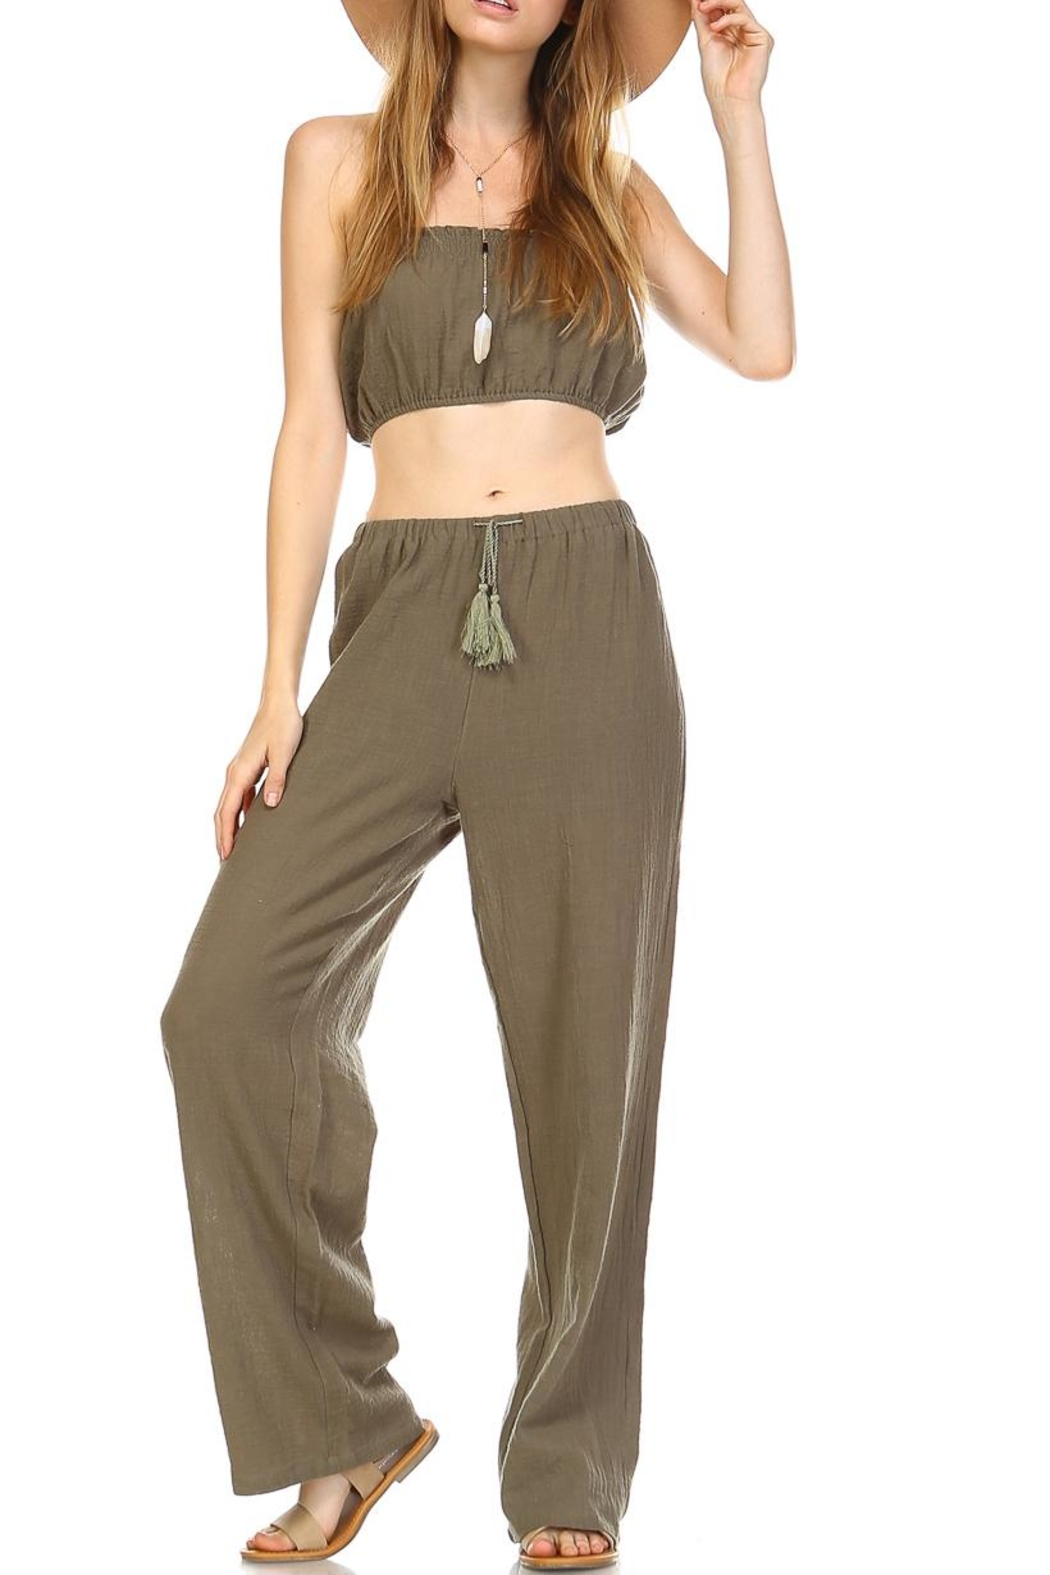 hers and mine Crop Pant Set - Main Image